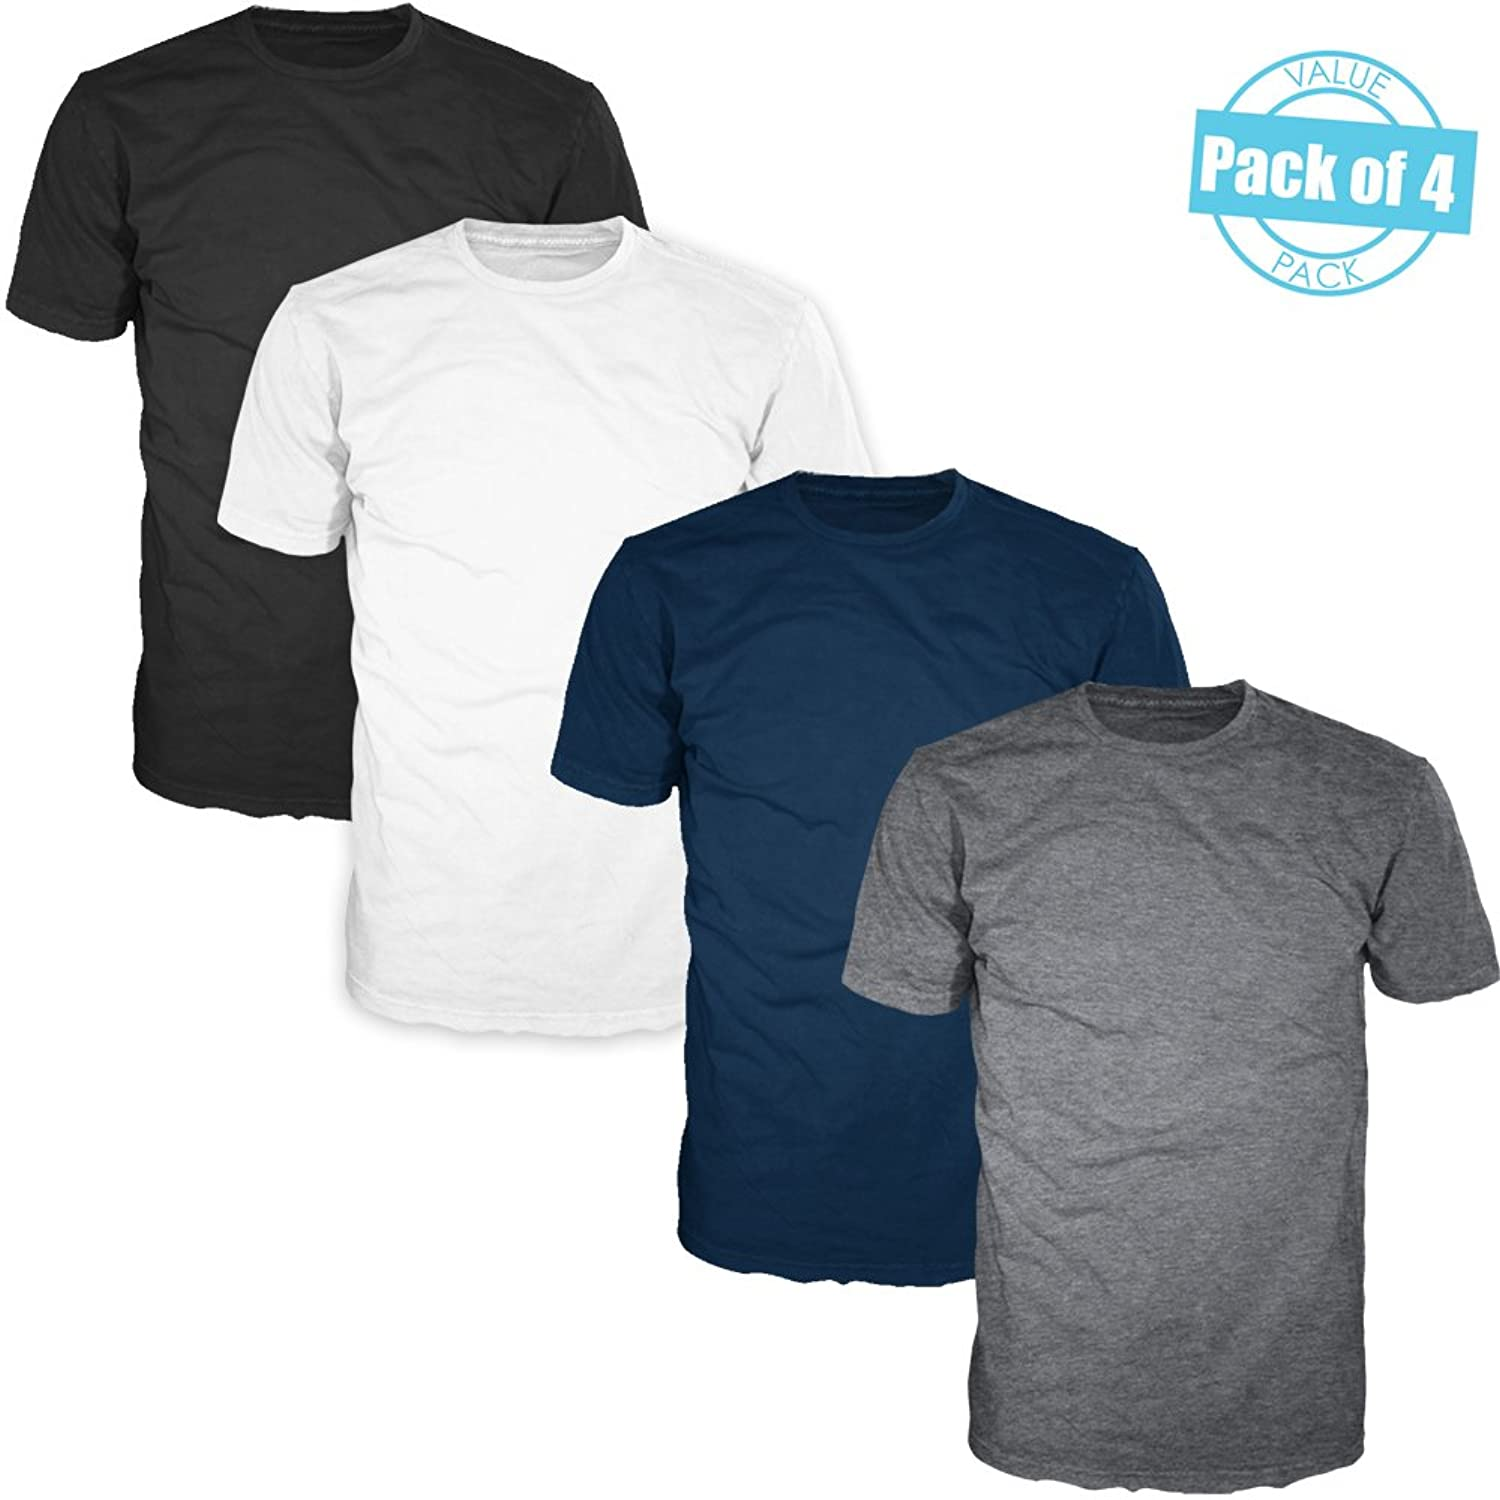 daa02f0b8 SIGNATURE CLASSICS FOR MEN - Every single shirt is of the highest quality  solid Plain Cotton perfect for everyday casual wear, creating your wardrobe  ...